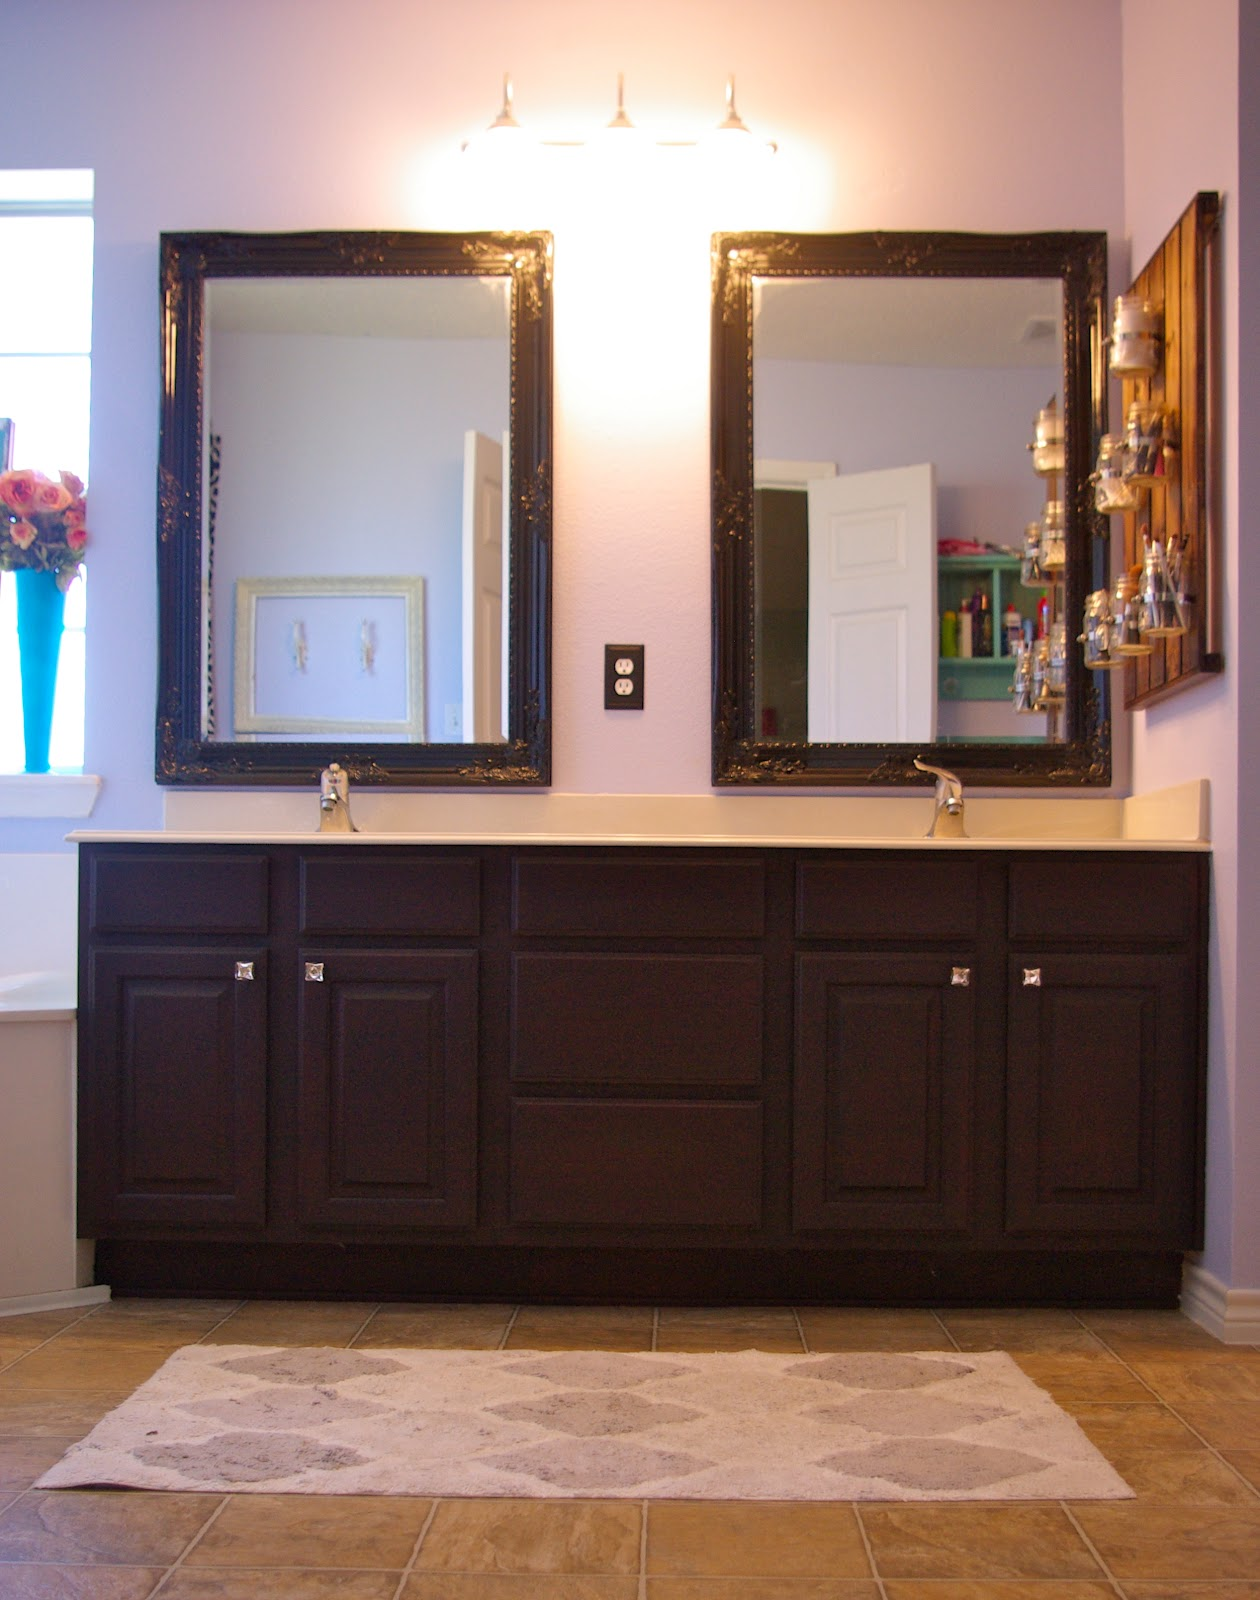 Genial Refinished Bathroom Cabinets